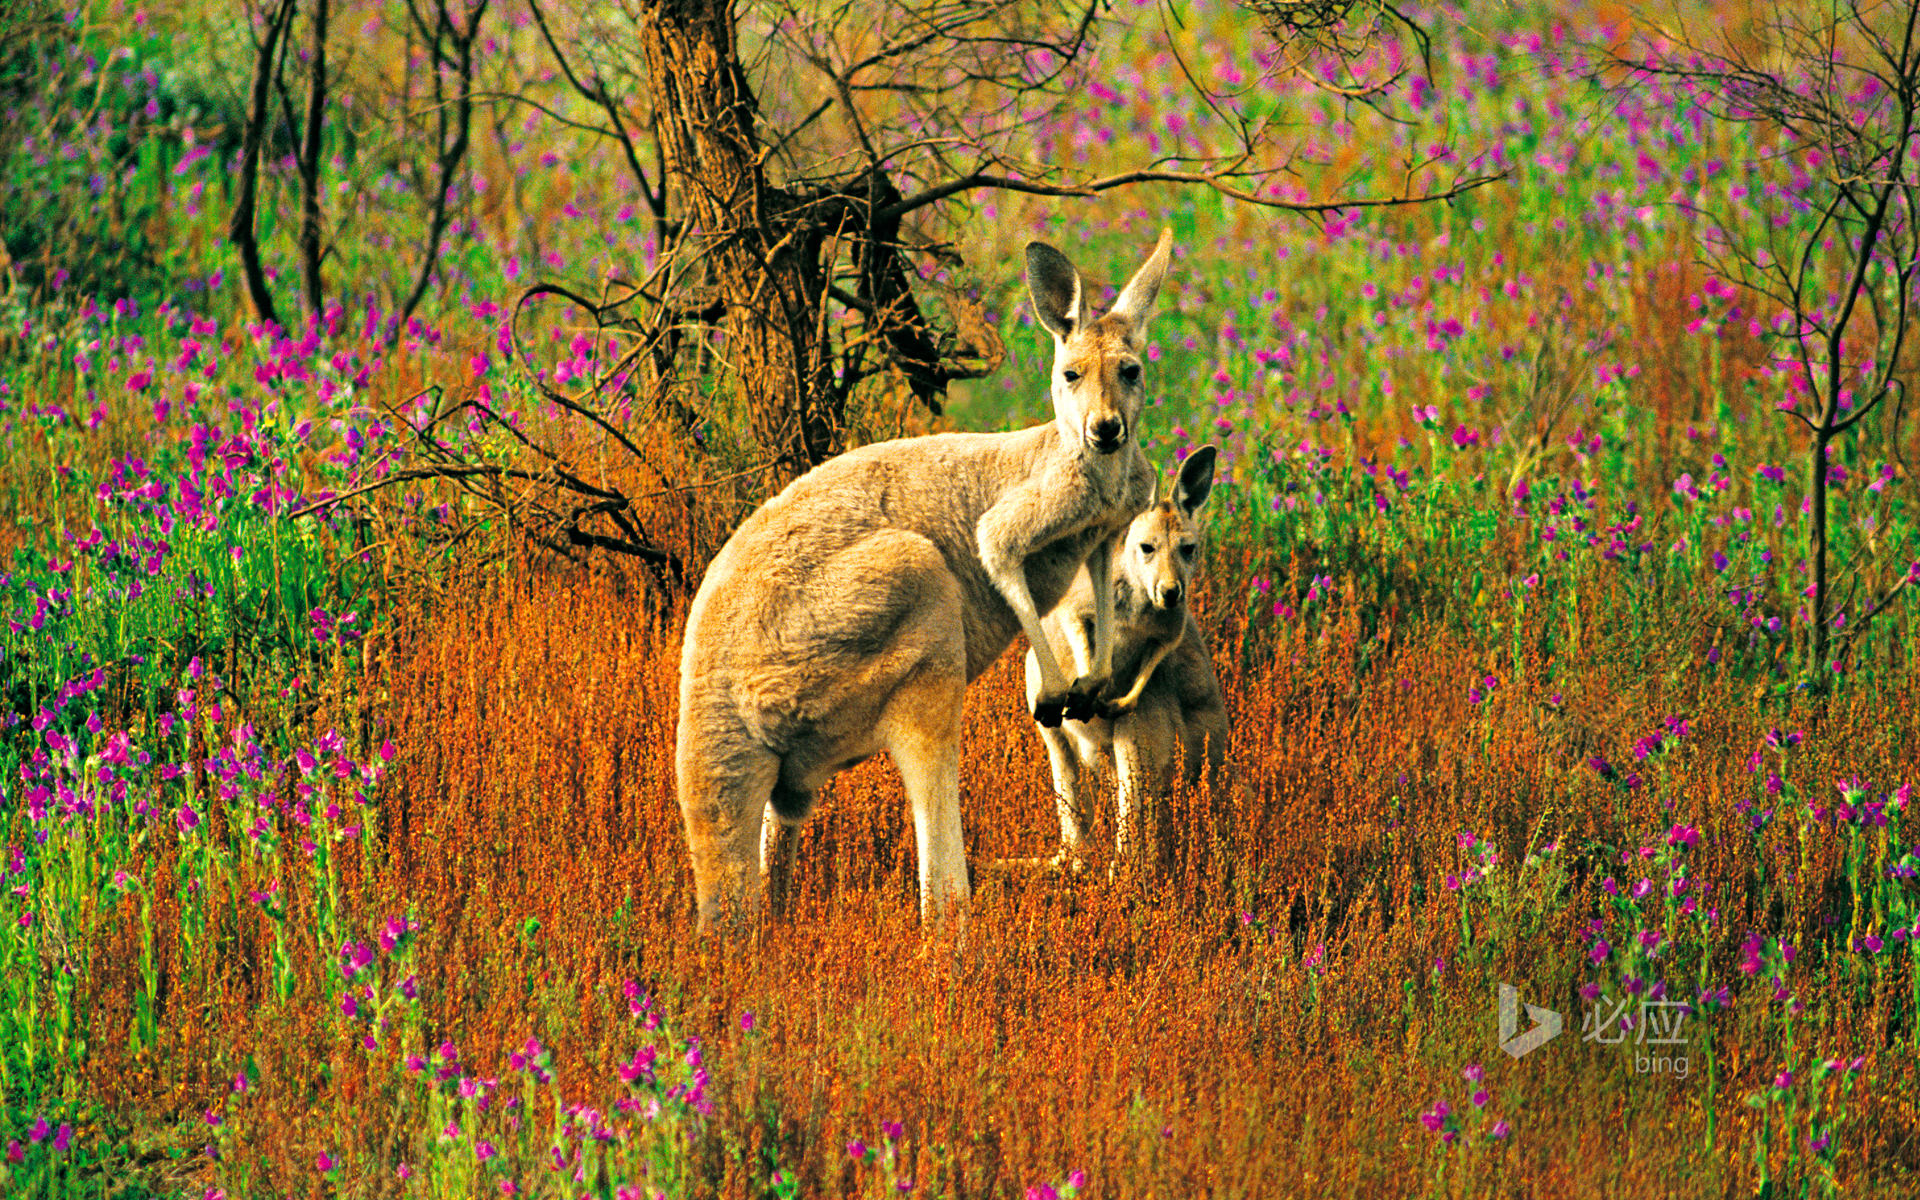 Flinders National Park, South Australia, Great Red Kangaroo with its children